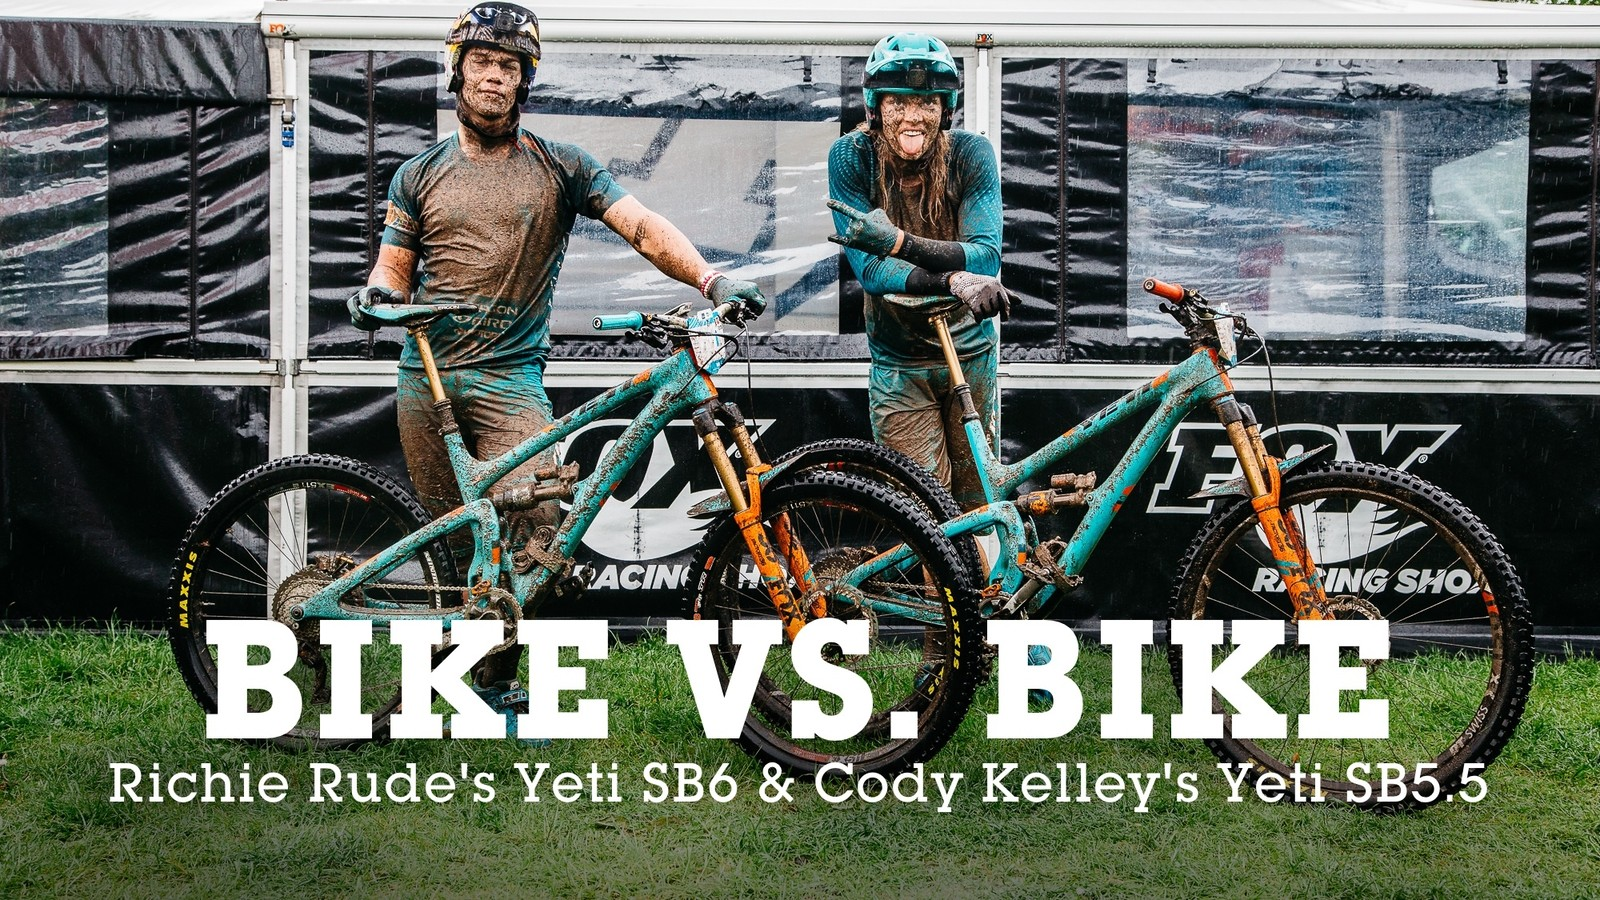 BIKE vs. BIKE - Richie Rude's Yeti SB6 27.5 or Cody Kelley's Yeti SB5.5 29er